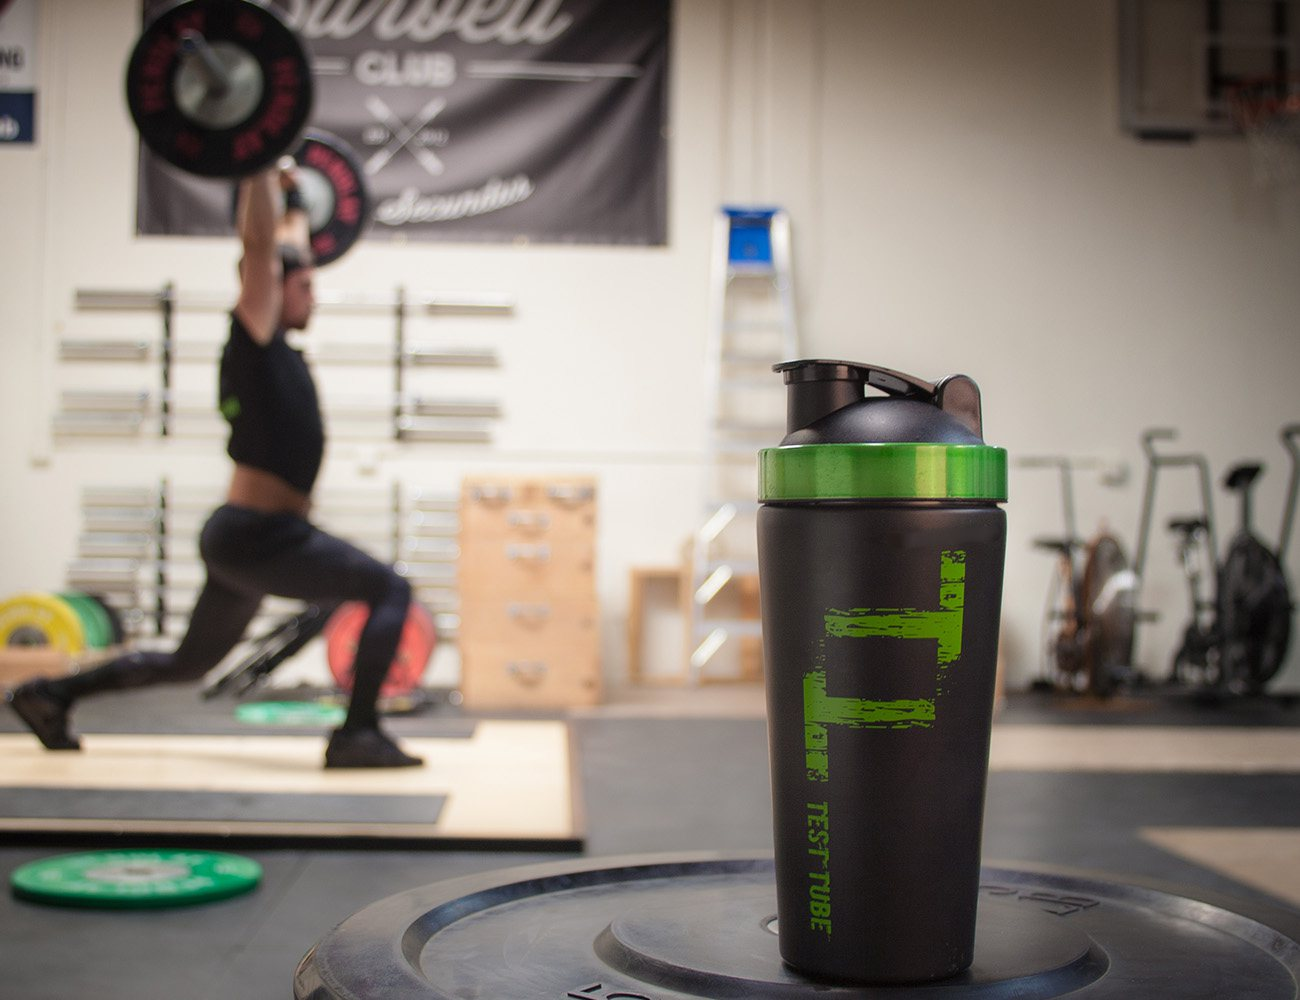 The+Test+Tube+Protein+Shaker